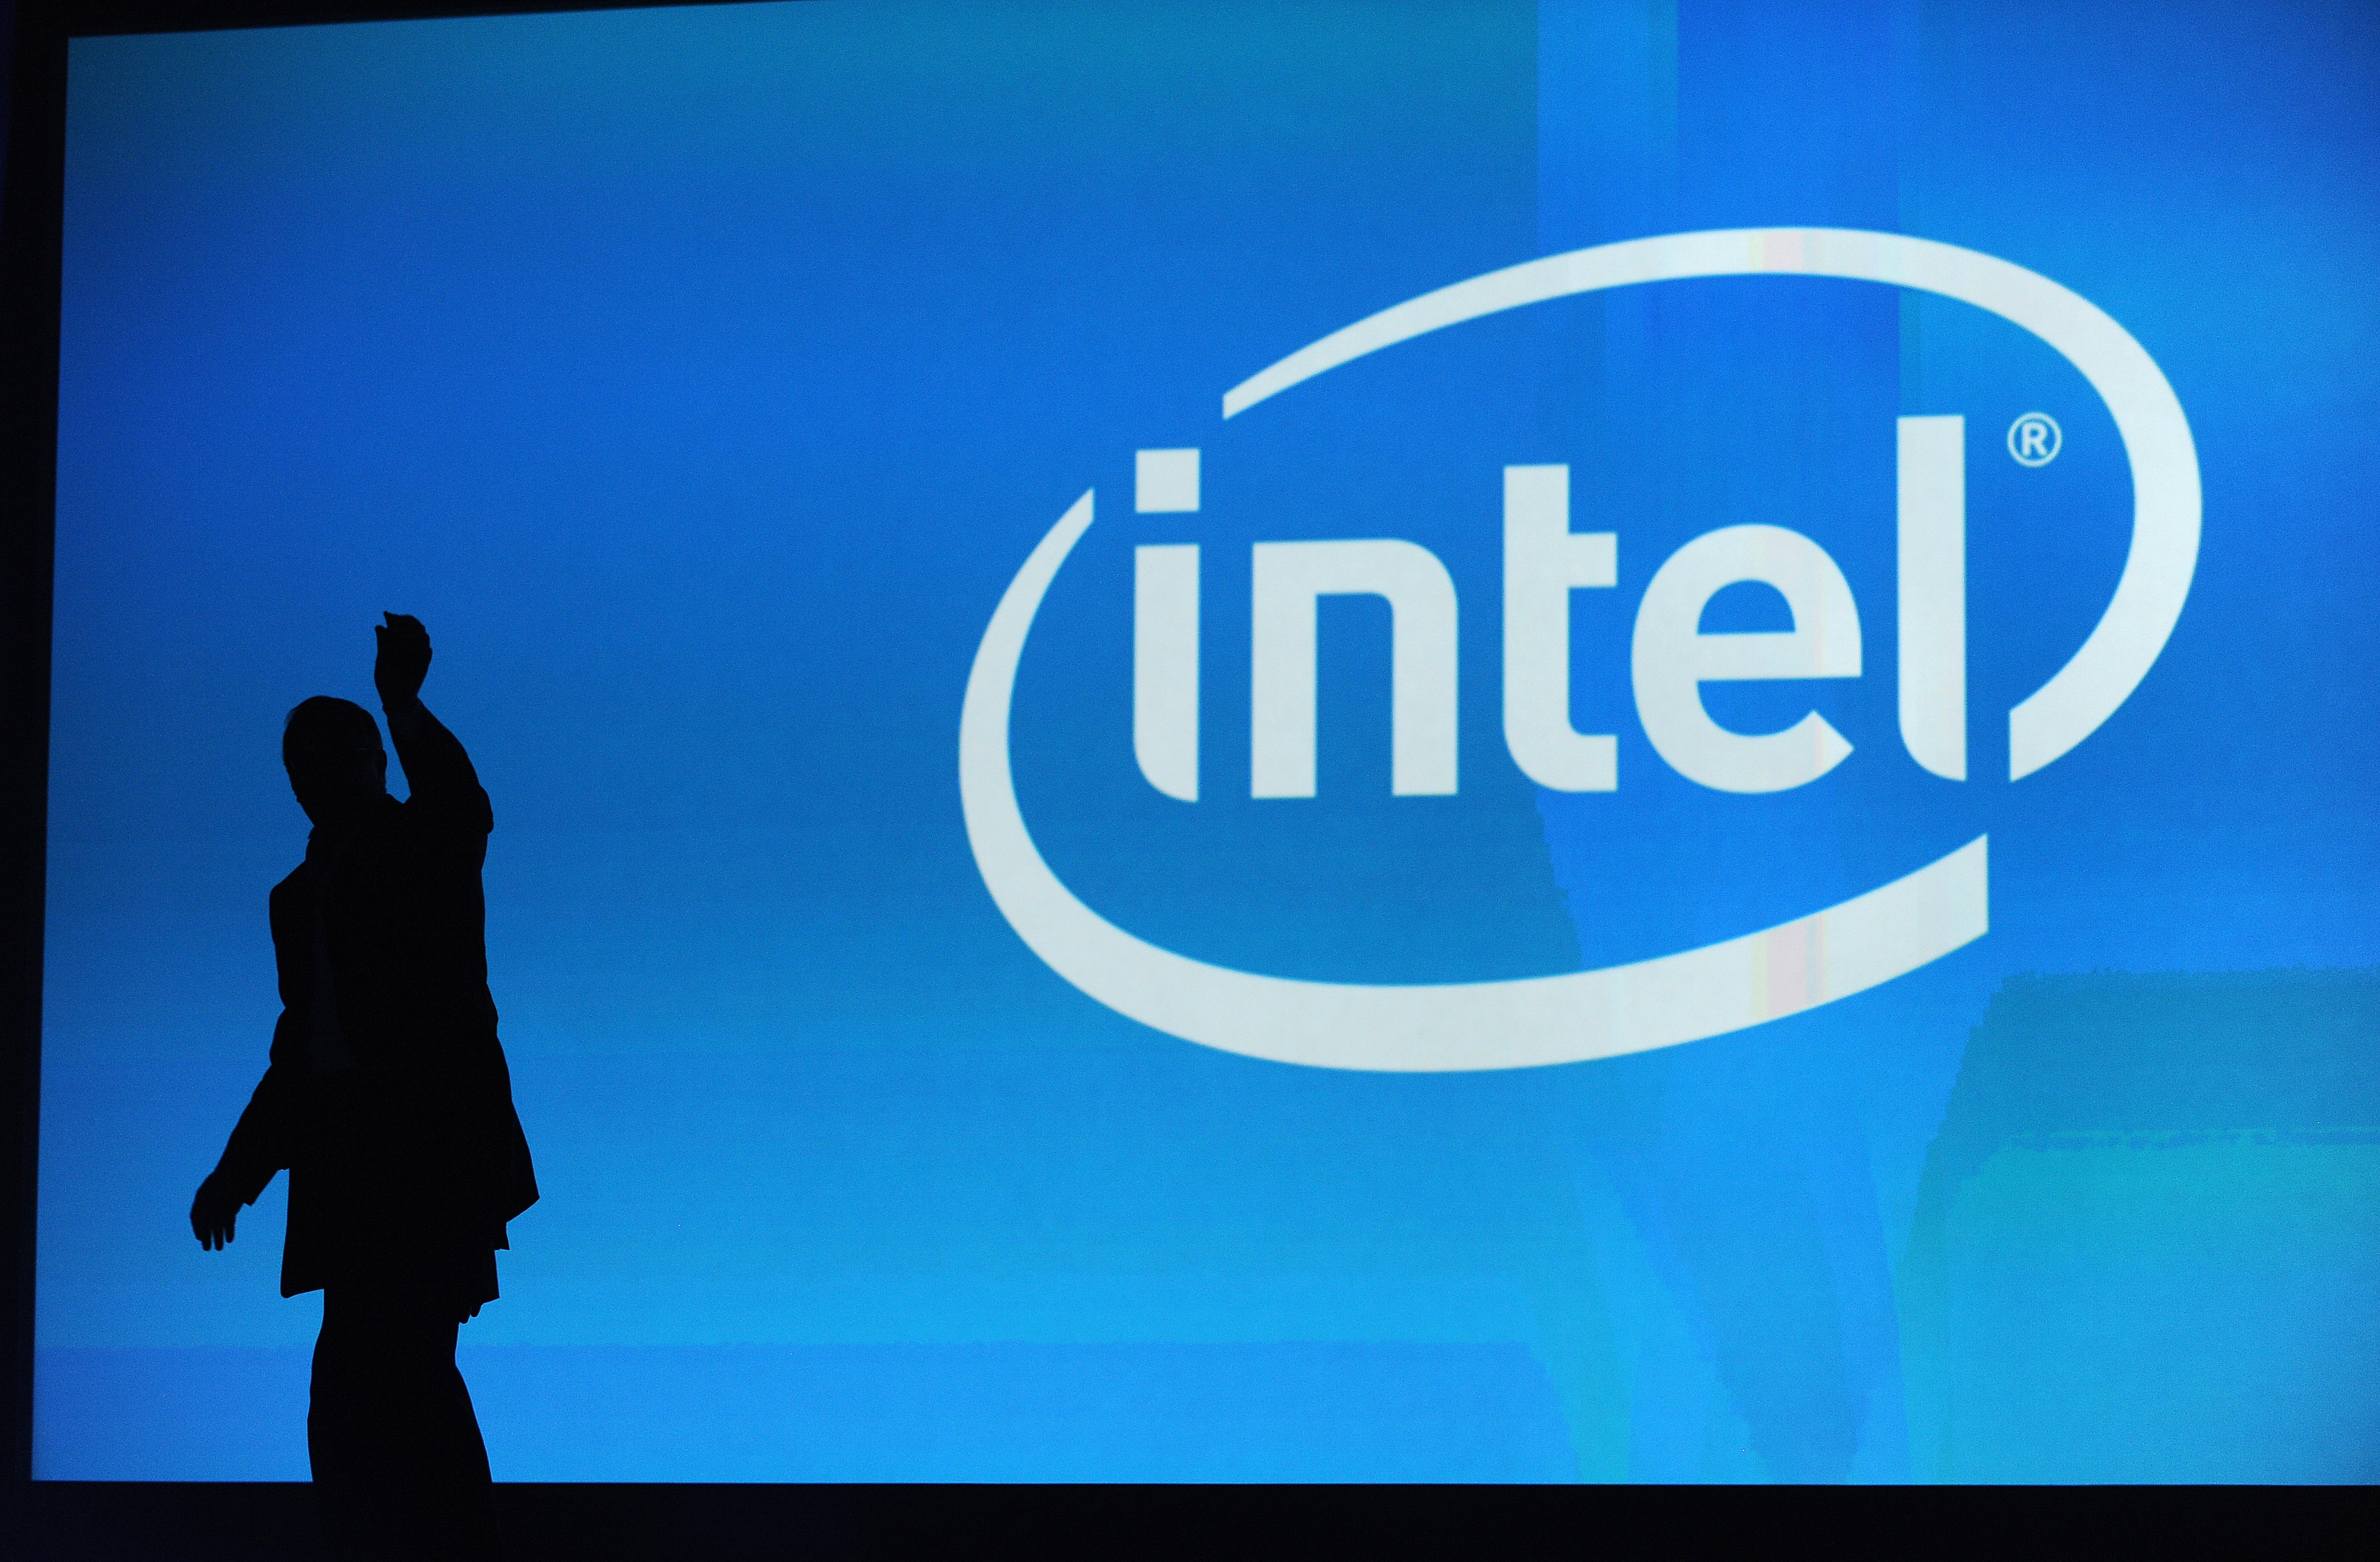 Intel and AIQ to Release 'Smart Shirt' this Summer